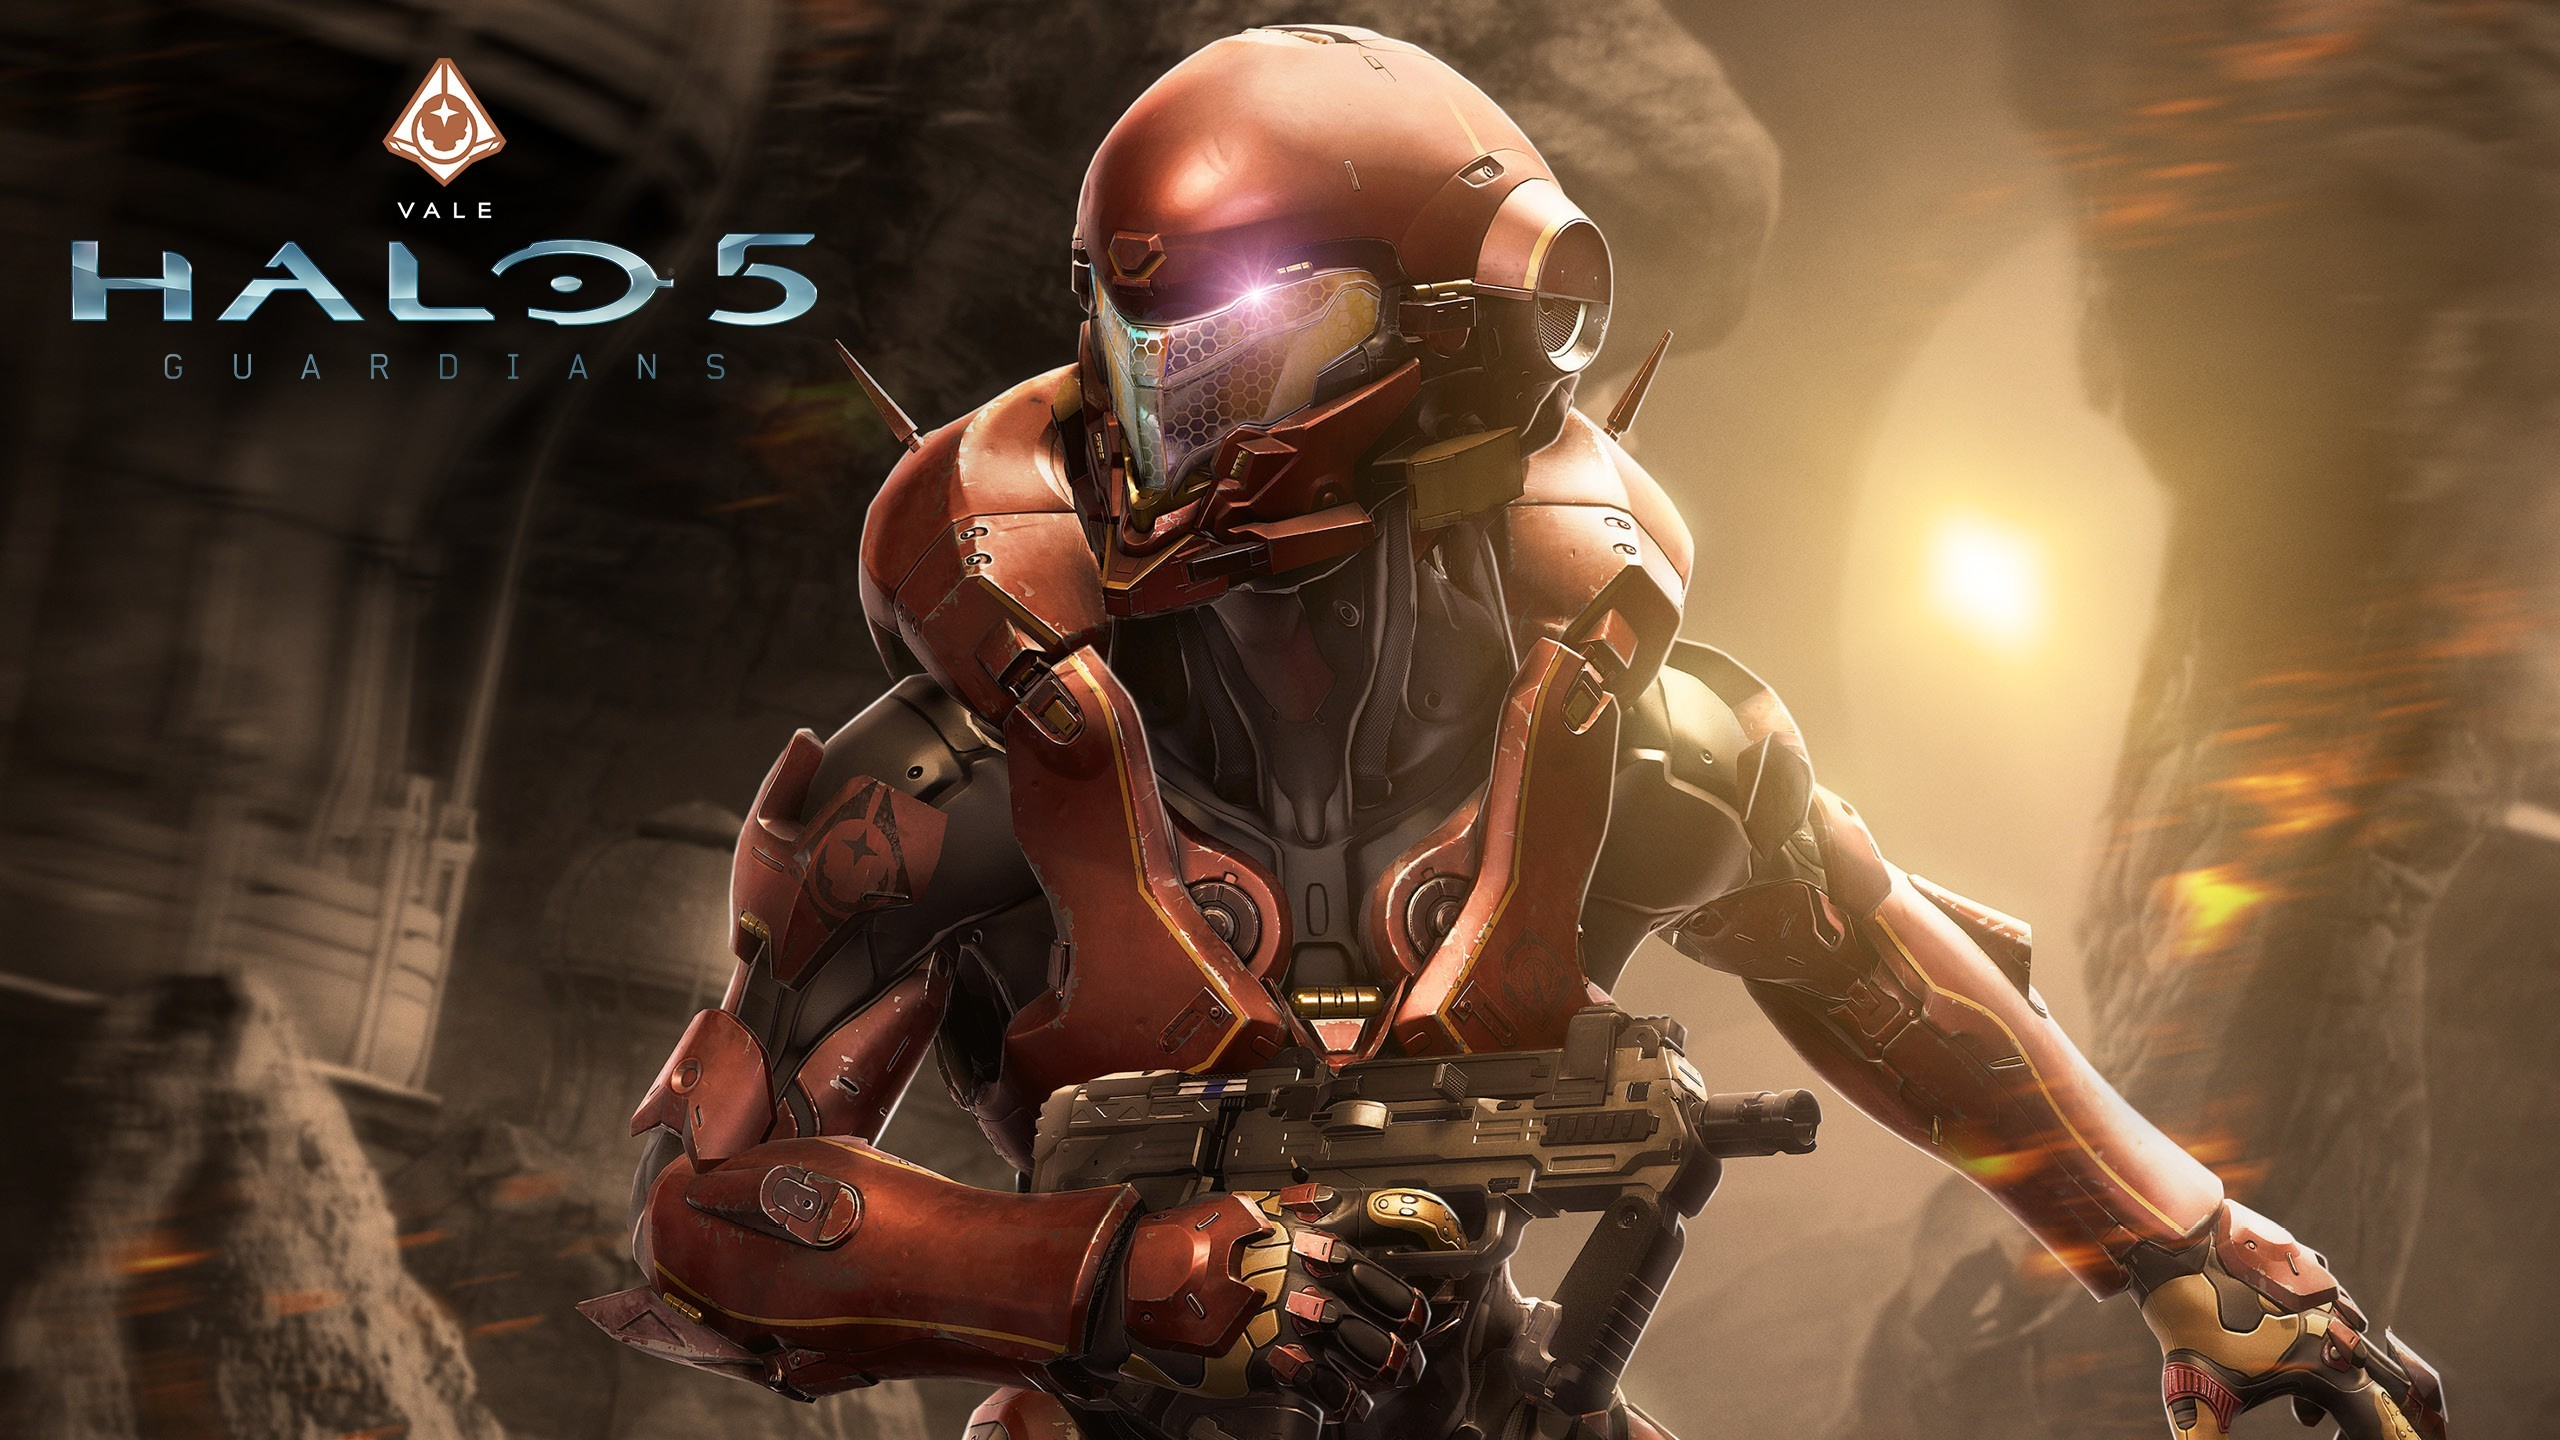 Wallpaper Halo 5, Armor, Weapons